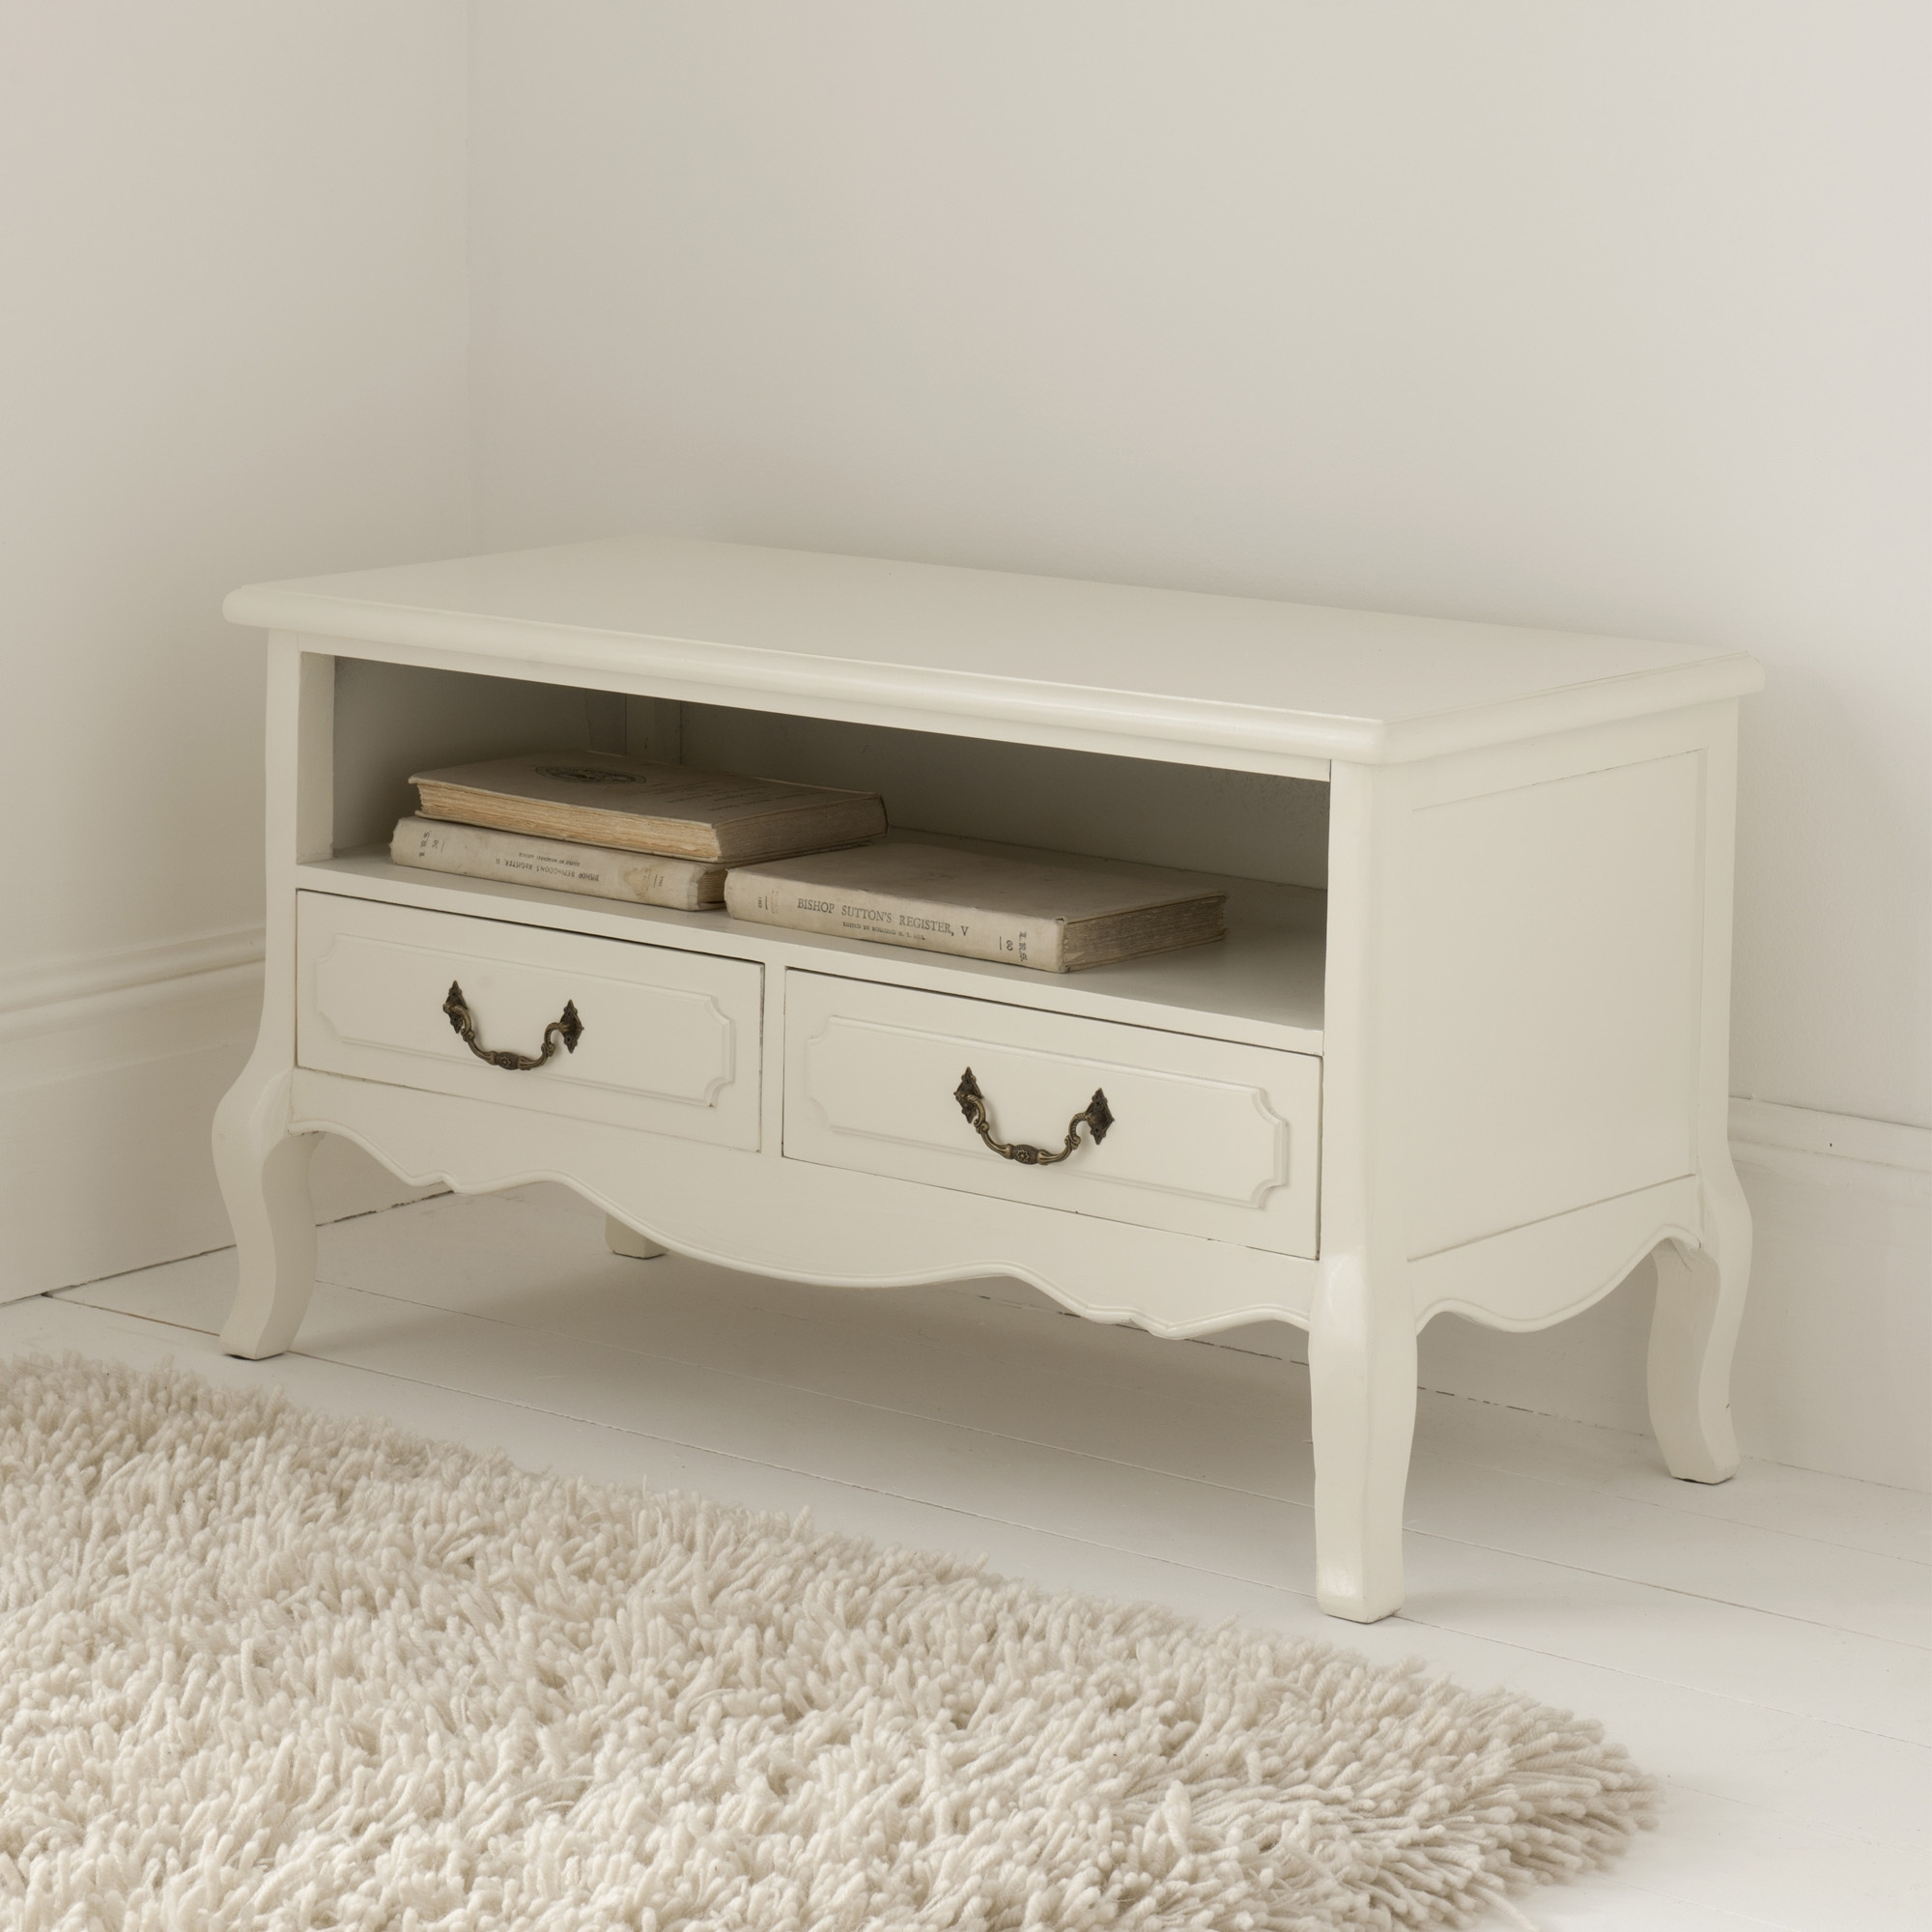 Most Popular Shabby Chic Furniture For Your Home І Homesdirect365 Pertaining To Shabby Chic Tv Cabinets (View 11 of 20)